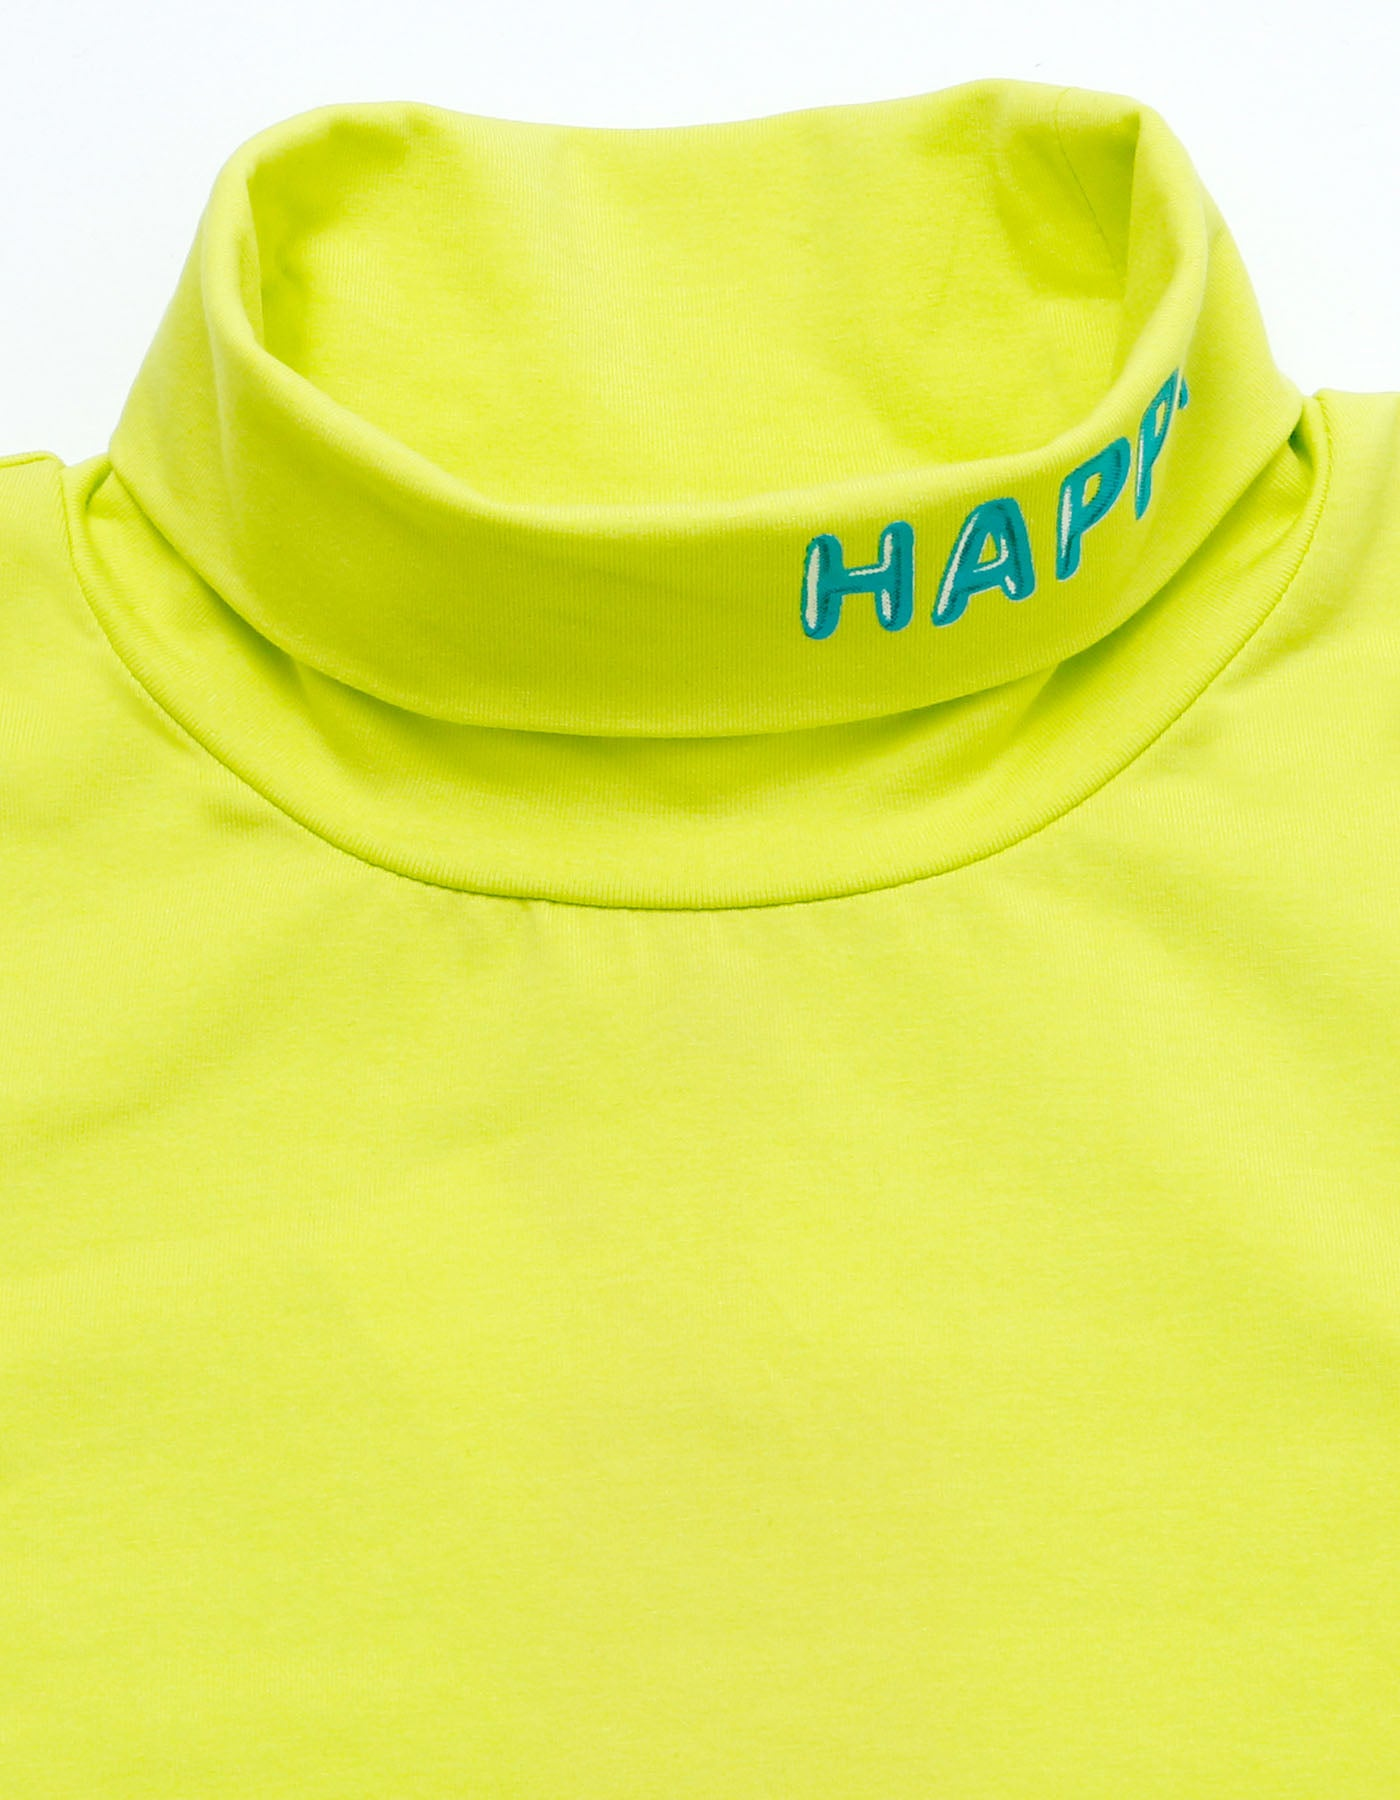 Colorful figh neck top - high neck top / NEONGREEN